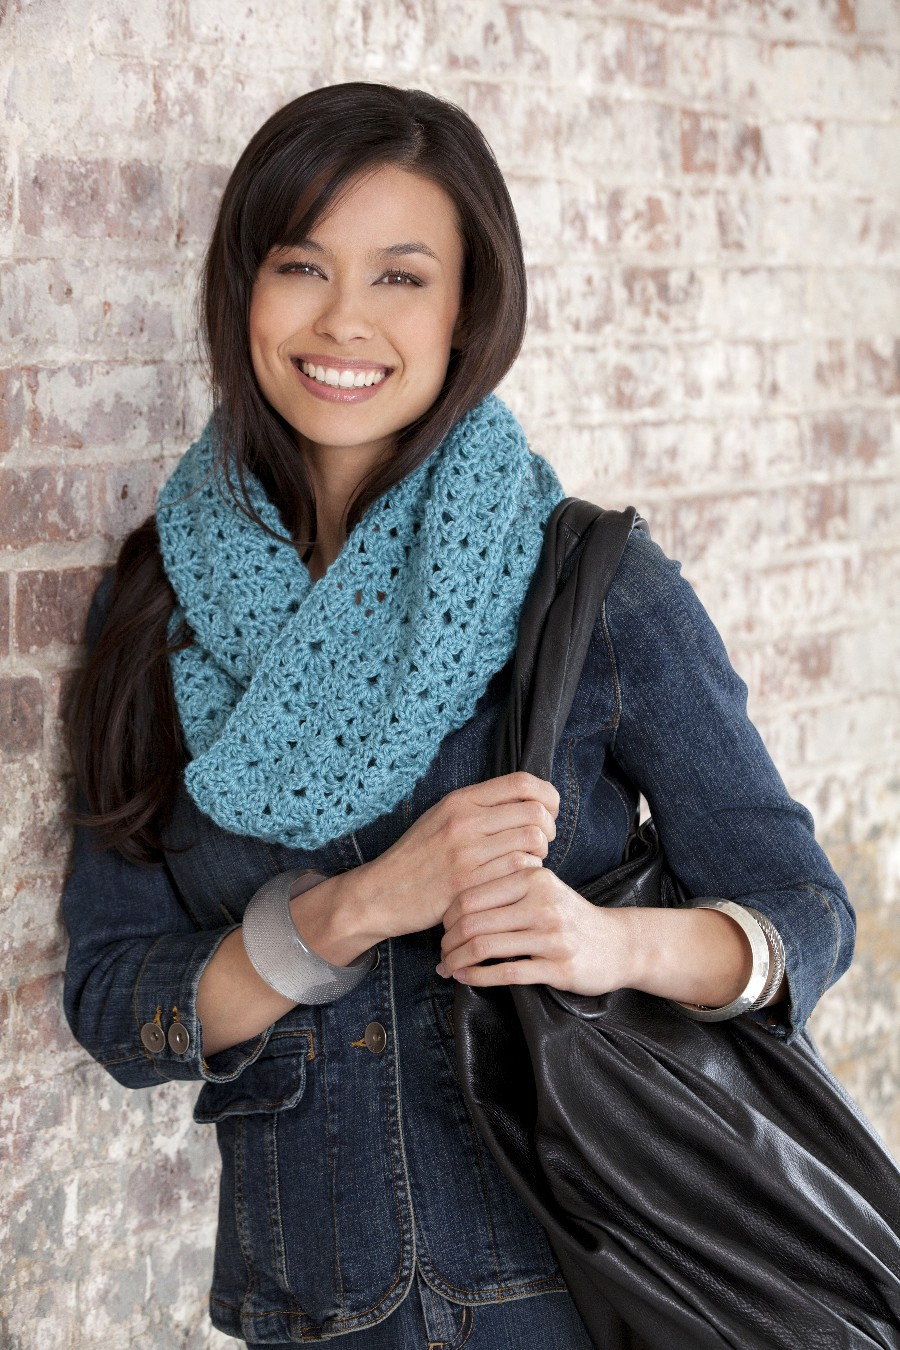 Infinity Scarf Pattern Inspirational Bellflower Infinity Scarf – Free Pattern Of Awesome 42 Ideas Infinity Scarf Pattern